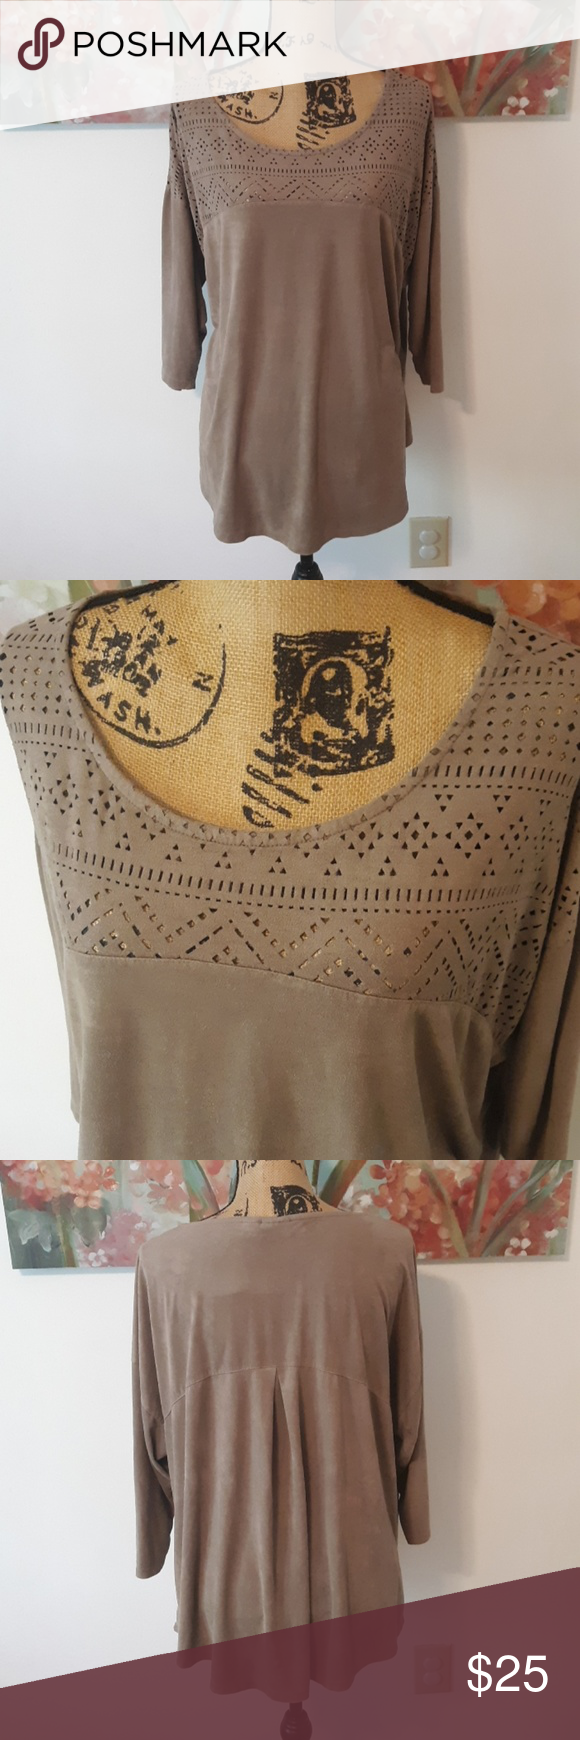 CATO Taupe Colored Top Size 18/20W CATO 3/4 Sleeve Taupe Colored Top with See-Through Upper Pattern Size 18/20W or 2X in Excellent Condition. It is light and soft with a suede feel.  - 27 armpit to armpit  - 28 long Cato Tops #wfaves